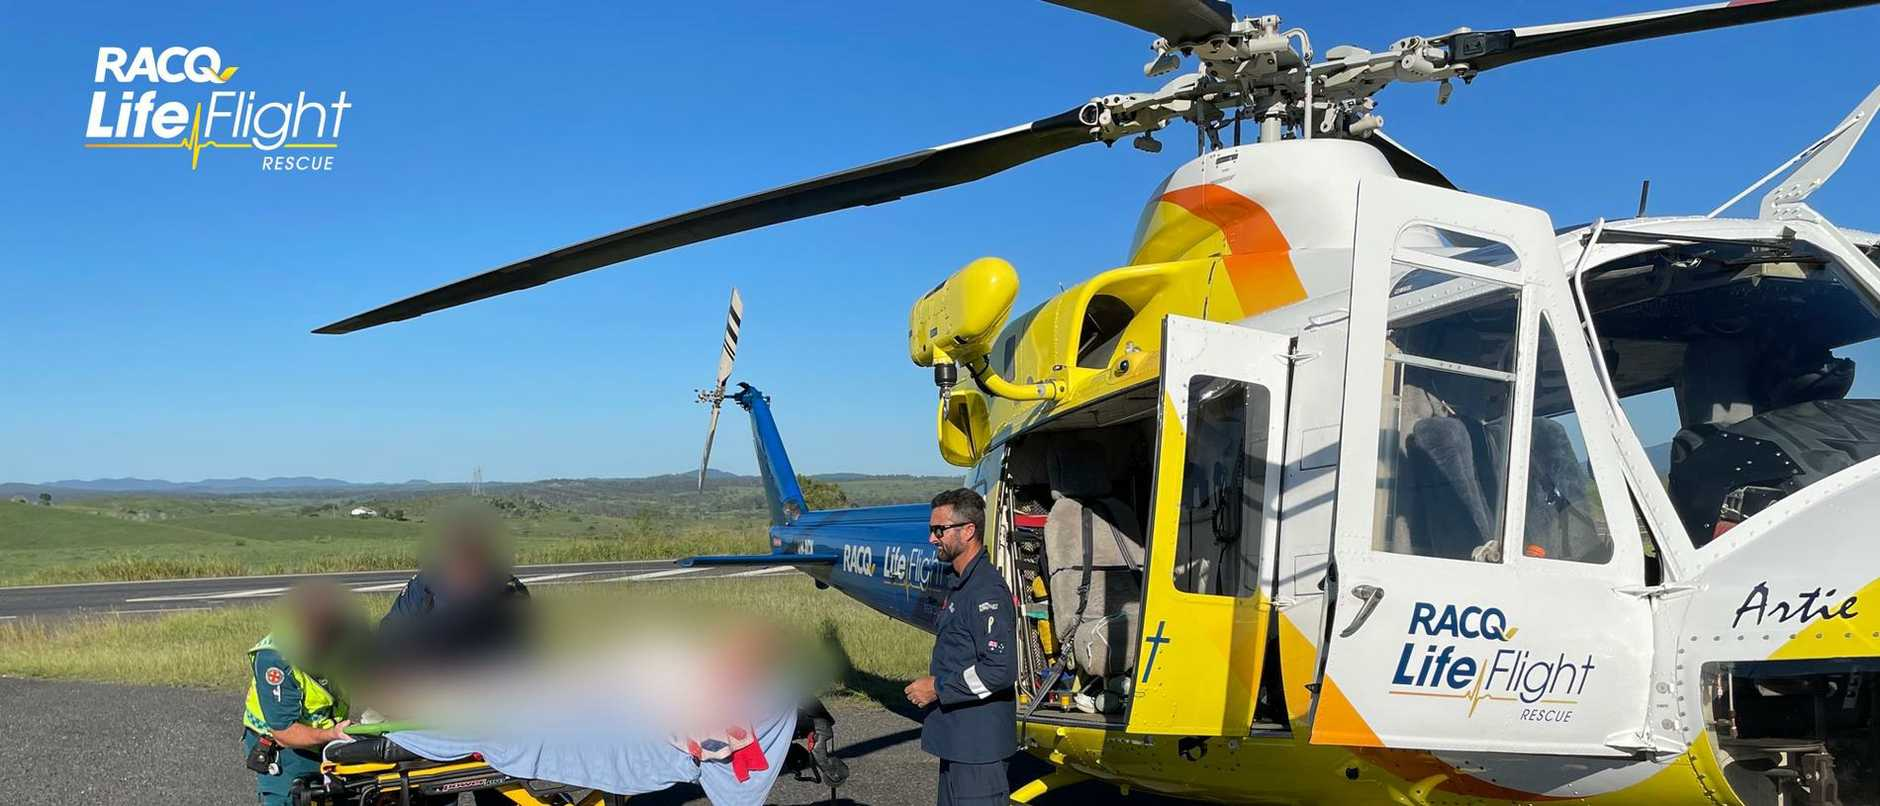 Horrific details have emerged as to how a Dalby student on her way to school was hit by a car and dragged for 170 metres.